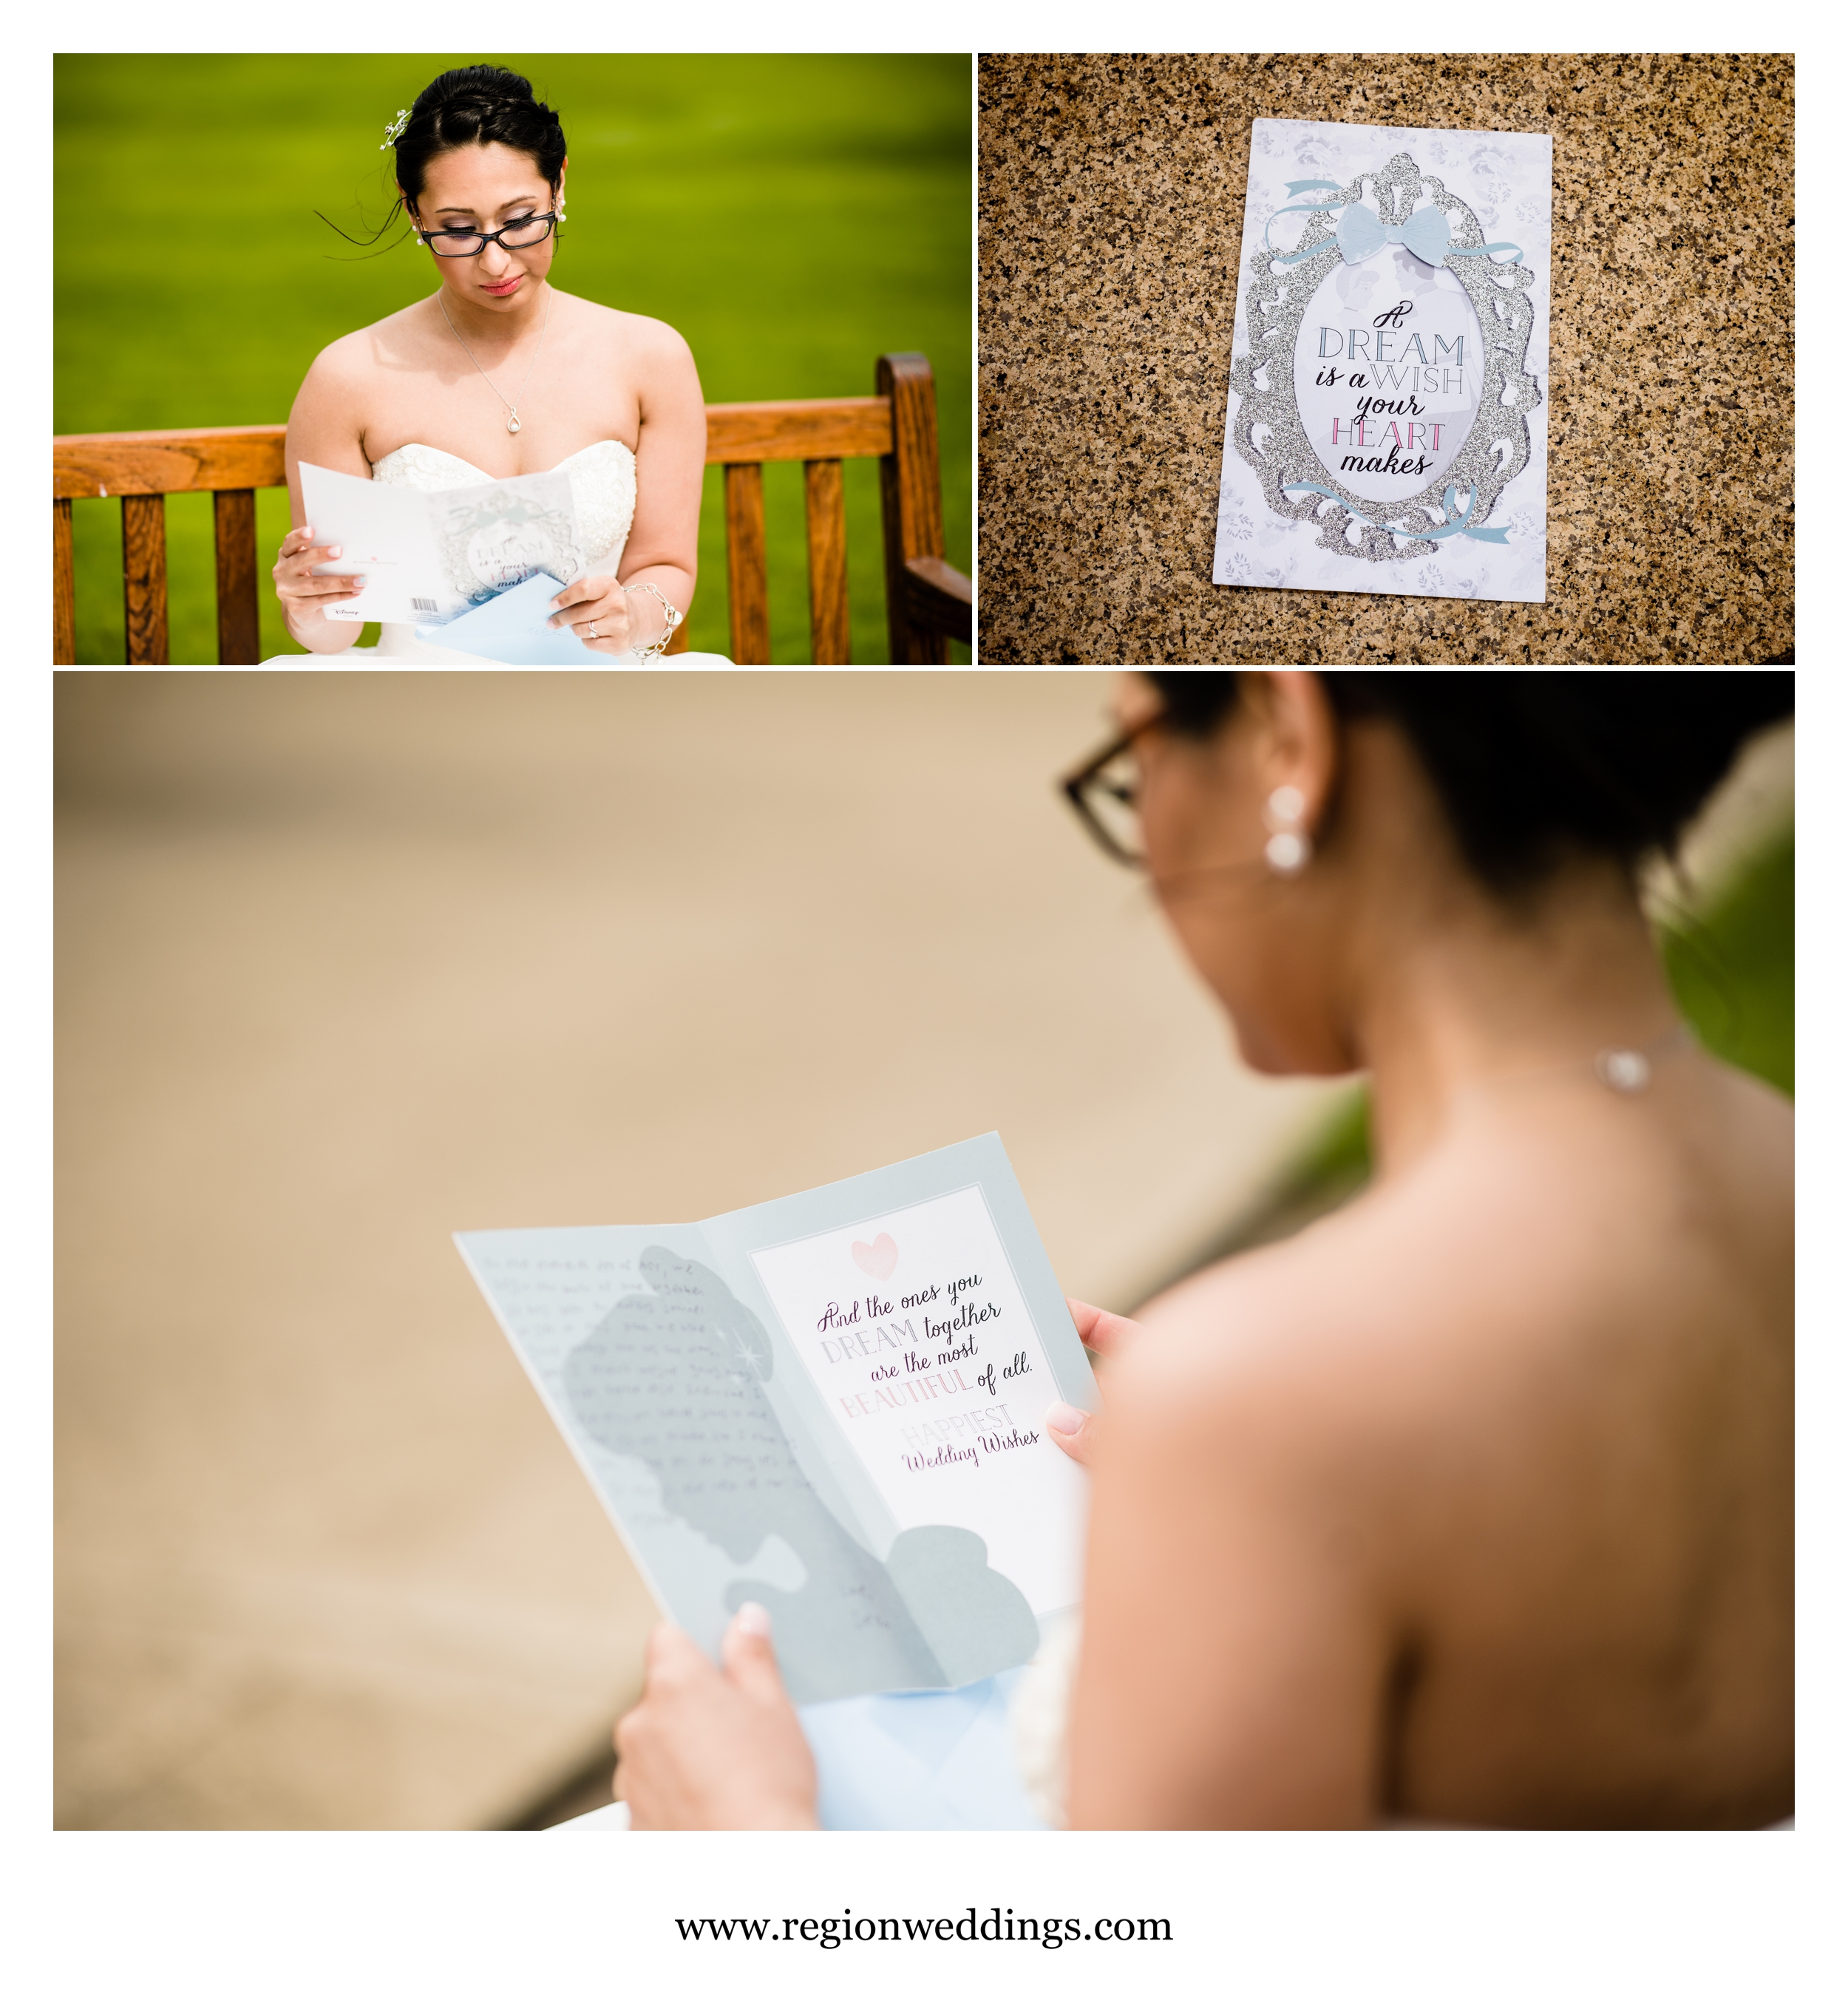 Bride reads a card given to her by the groom.